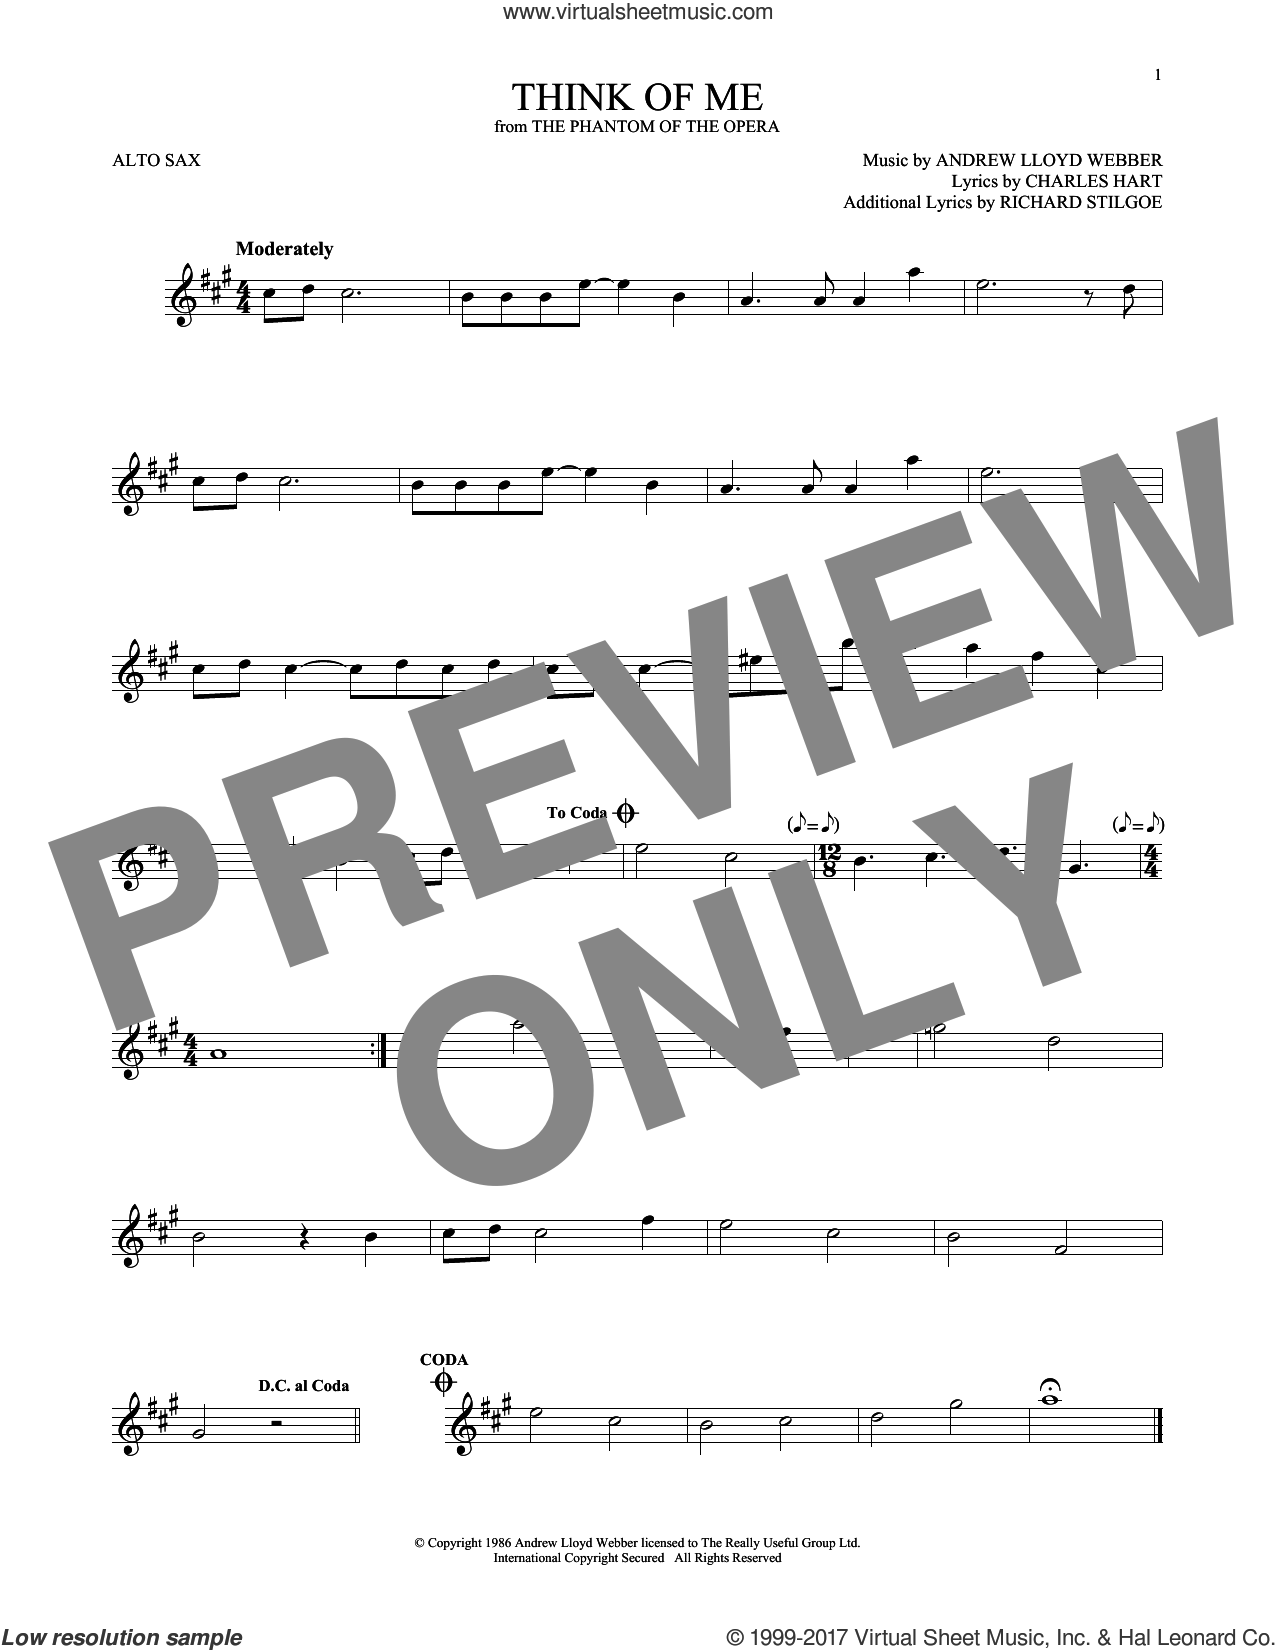 Think Of Me sheet music for alto saxophone solo by Andrew Lloyd Webber, Charles Hart and Richard Stilgoe, intermediate skill level